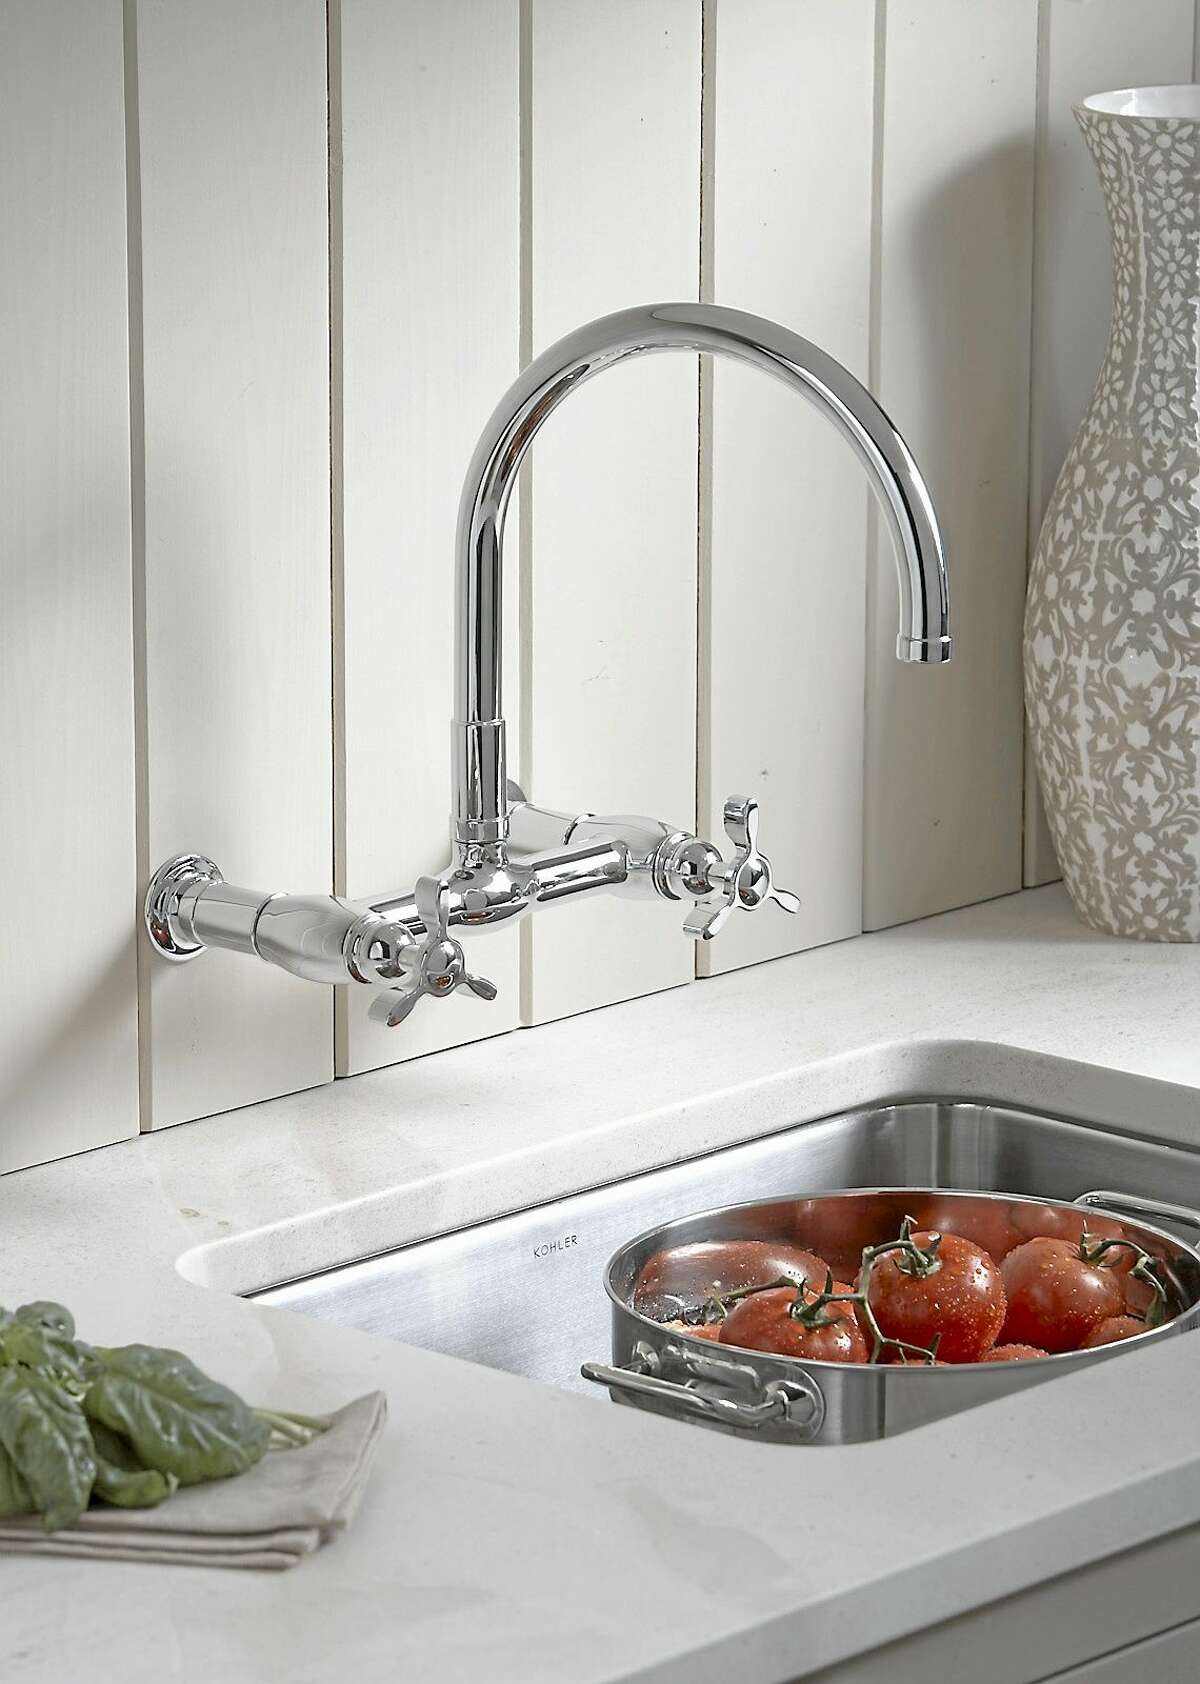 SCRIPPS HOWARD NEWS SERVICE ¬ New bridge faucets are a modern take off of the original design, and can be wall mounted or deck mounted right on the sink.